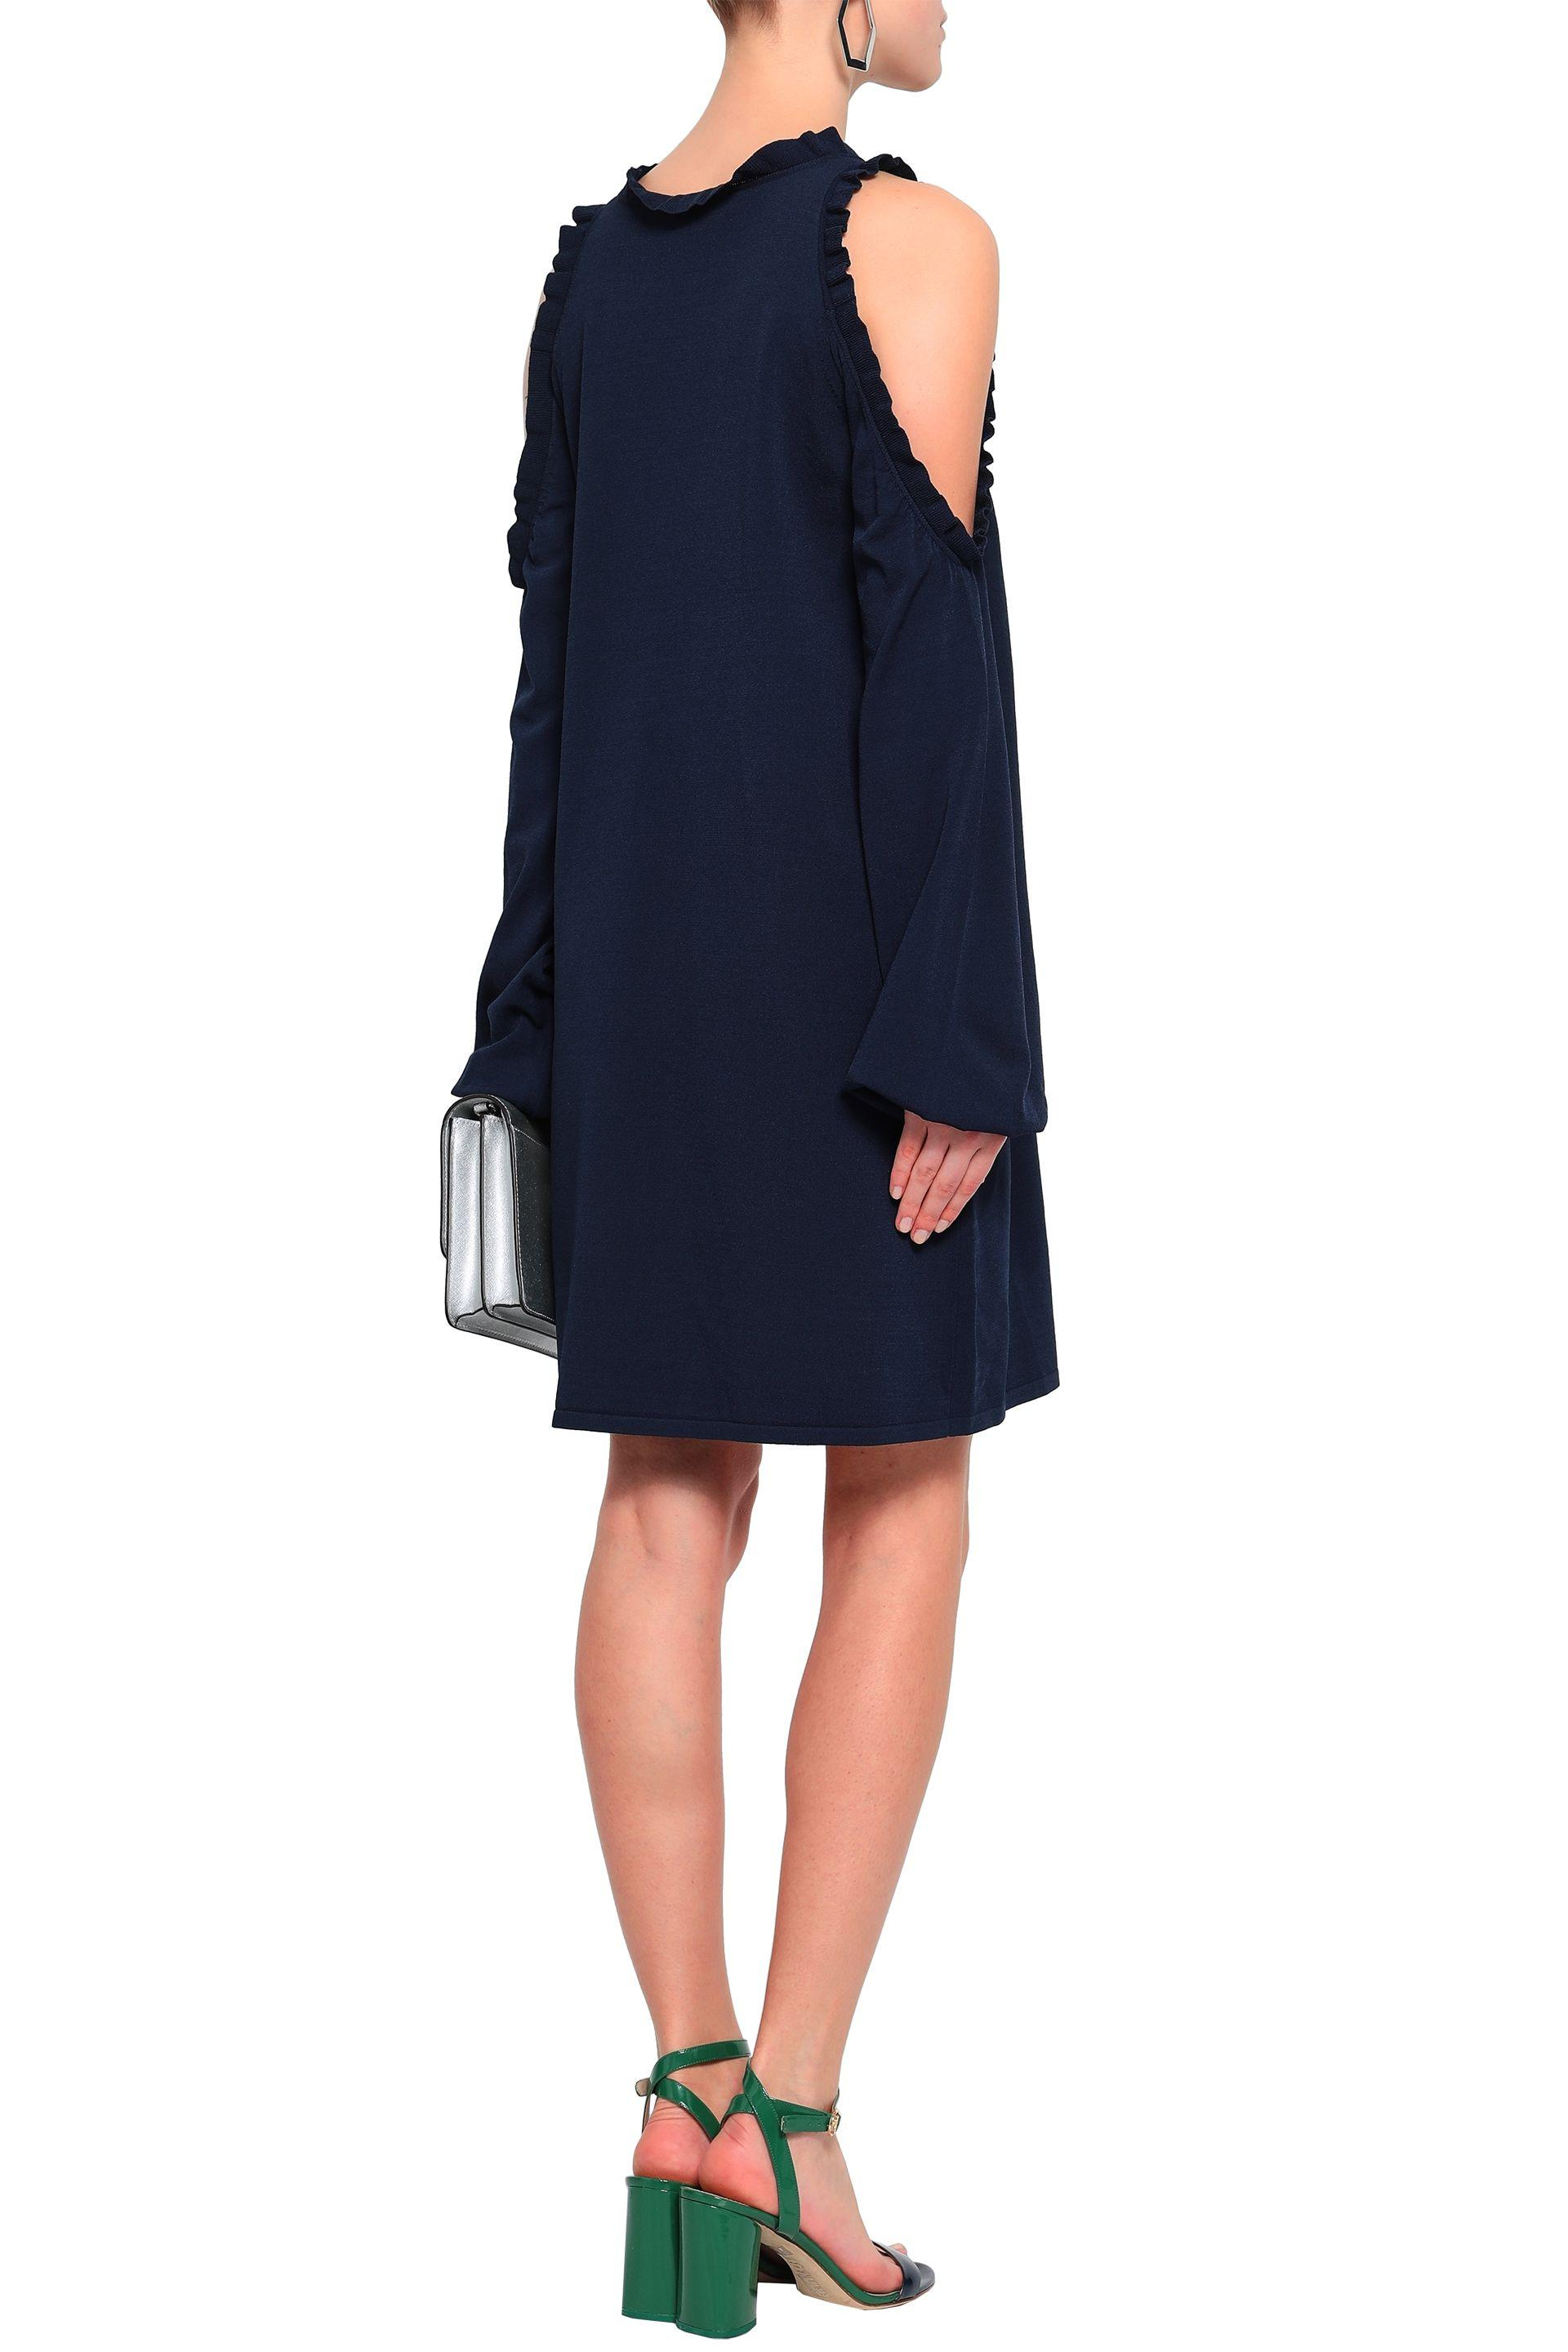 8ad4451bc443 MILLY - Blue Woman Cold-shoulder Ruffle-trimmed Stretch-knit Mini Dress  Navy. View fullscreen